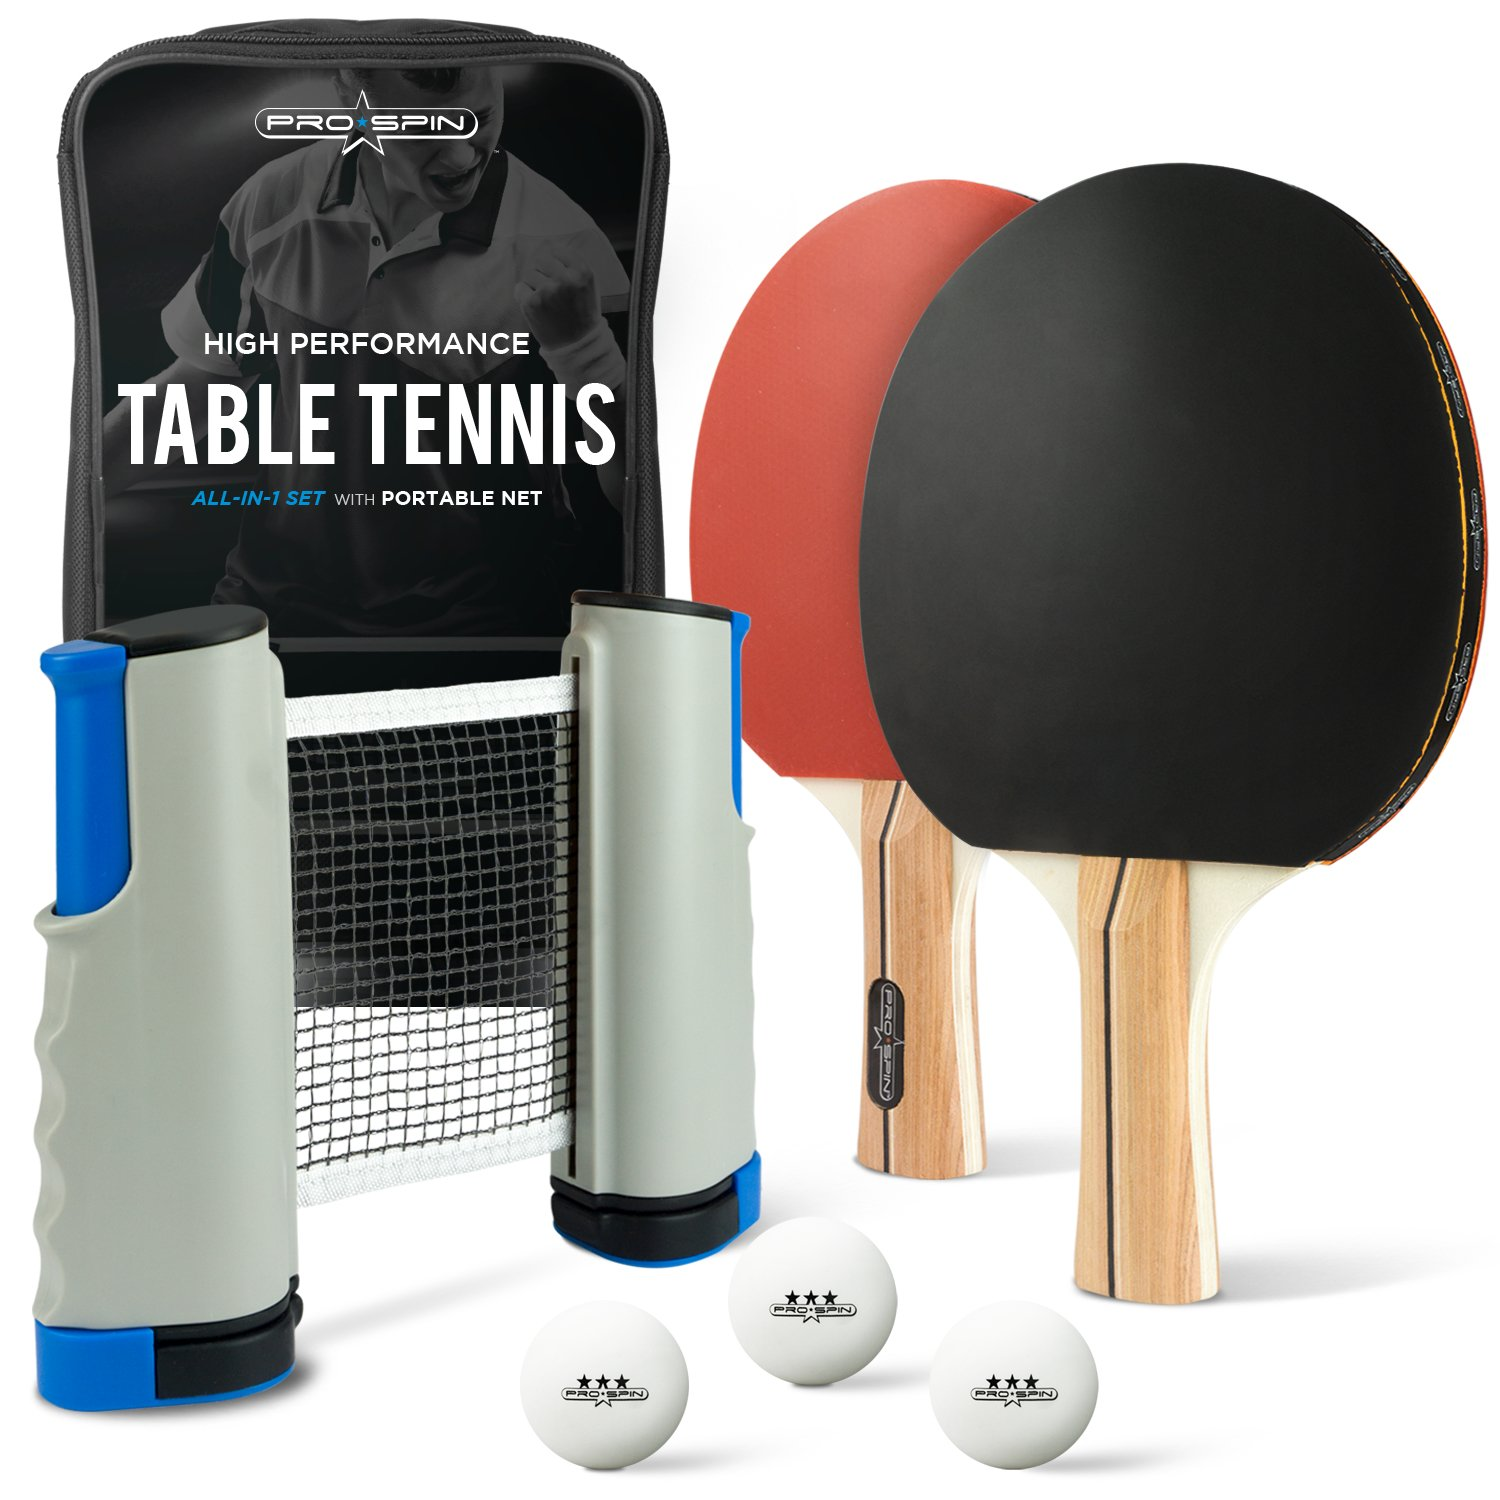 PRO SPIN Portable Ping Pong Set - Includes Retractable Net for Any Table, 2 Performance Paddles/Rackets, 3-Star Balls, Premium Storage Case